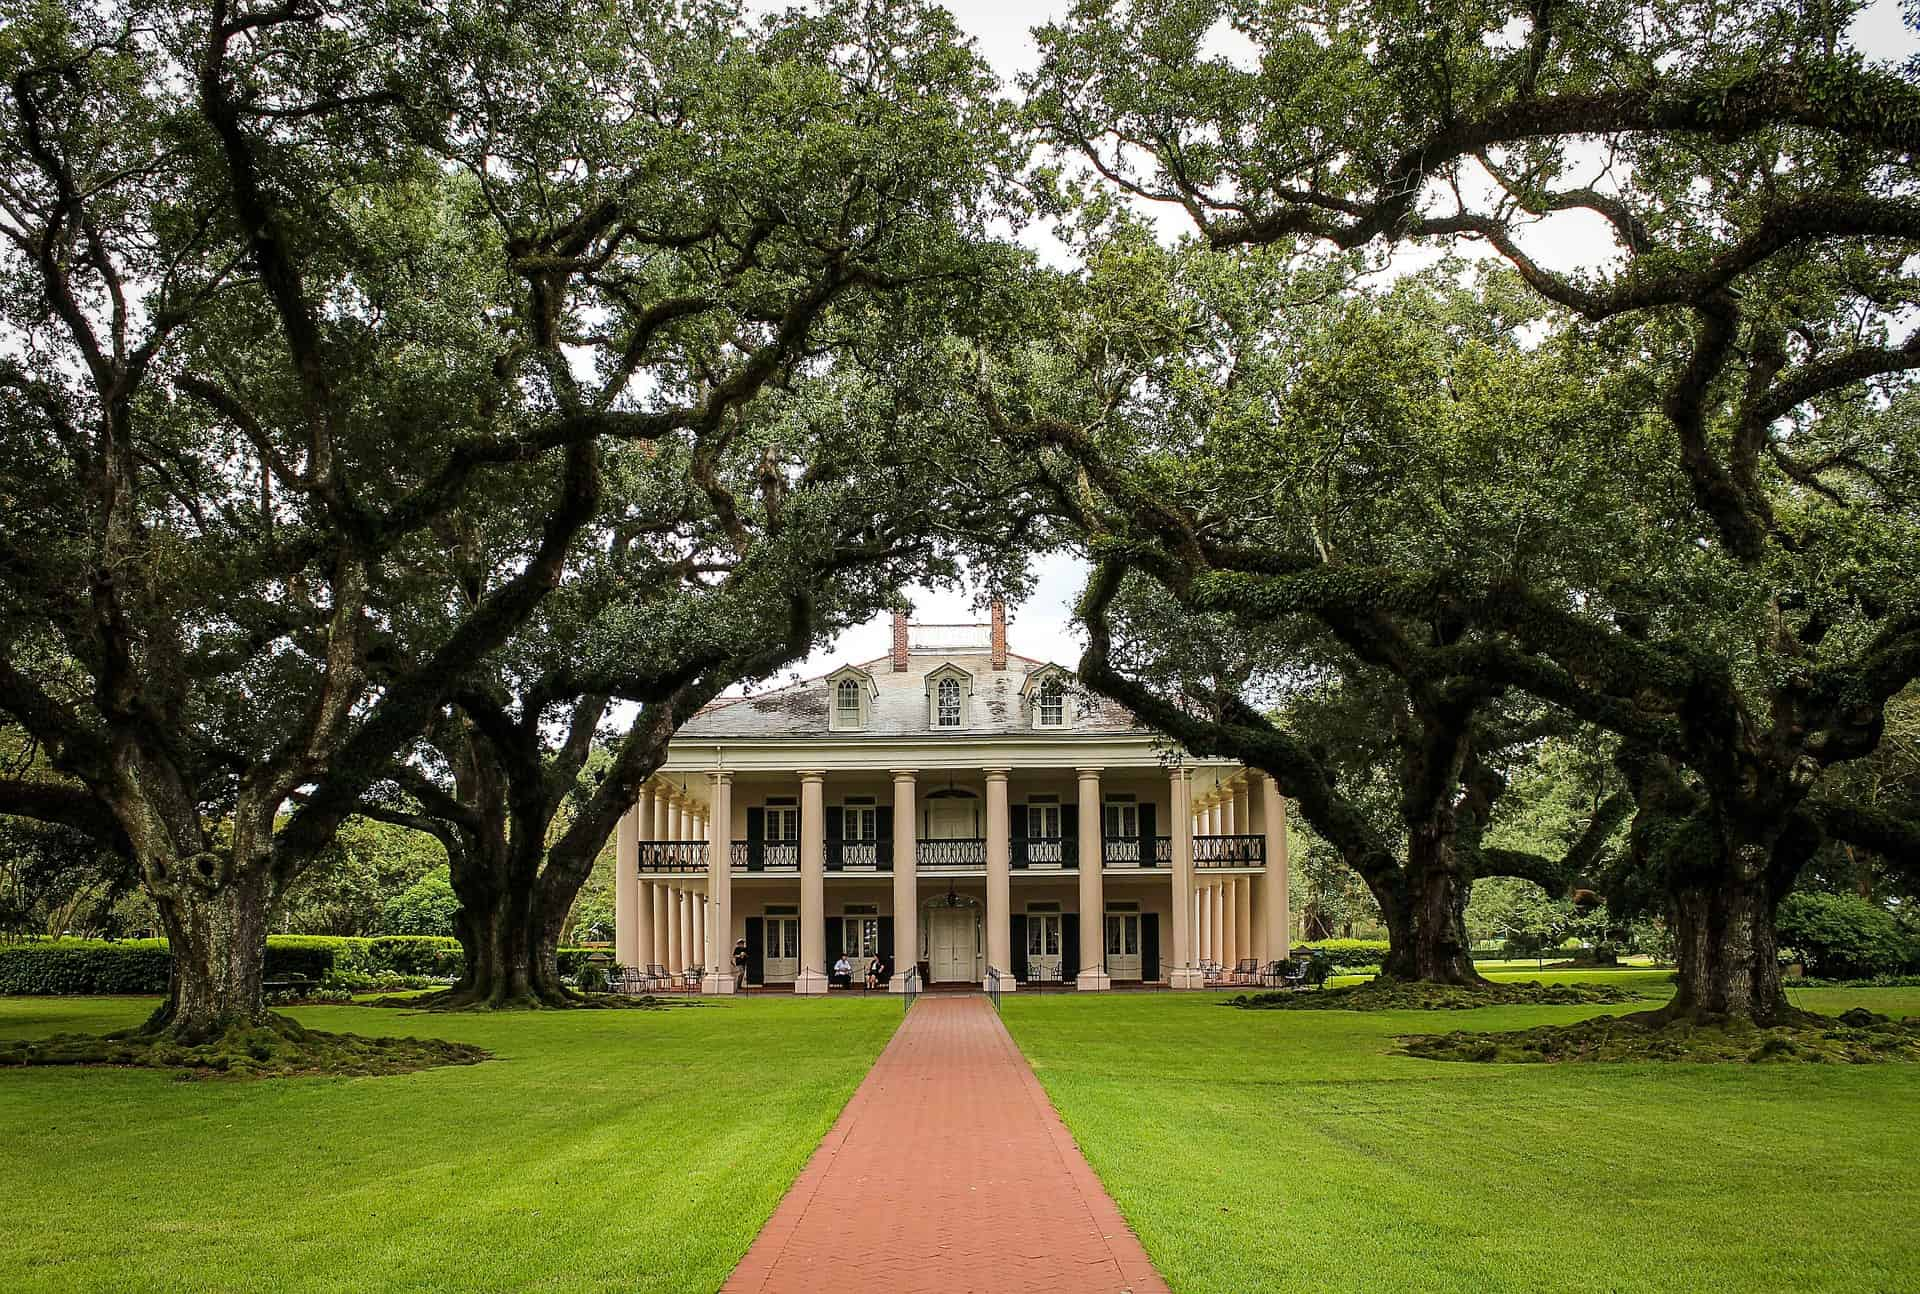 USA - Louisiana - Oak Alley Plantation Facade